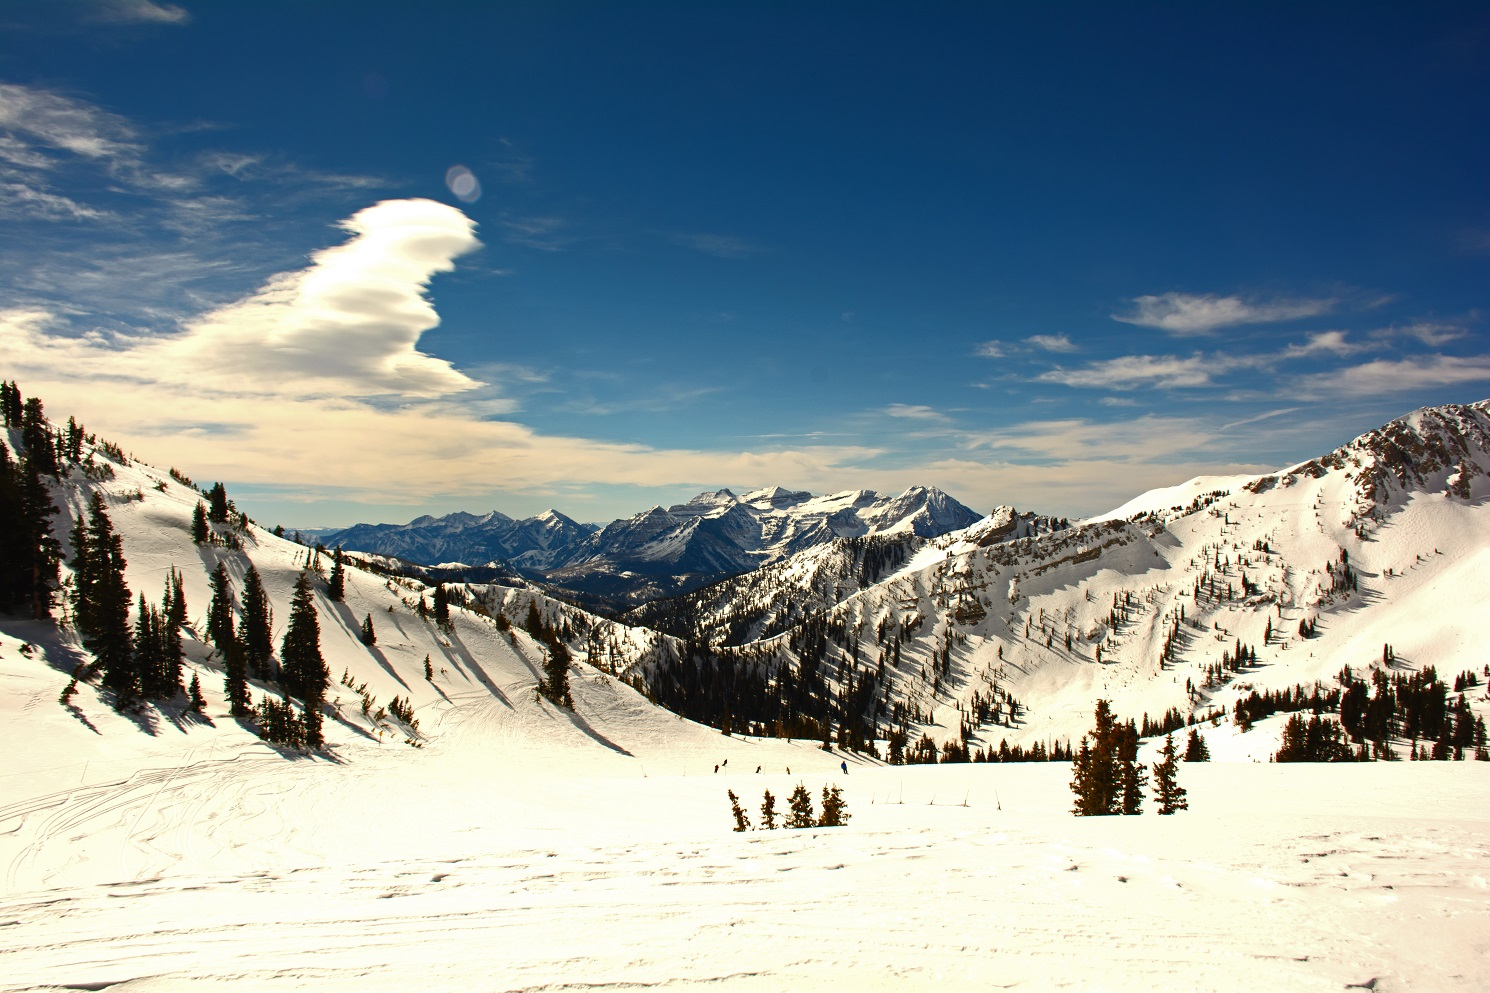 snow capped mountain scenery